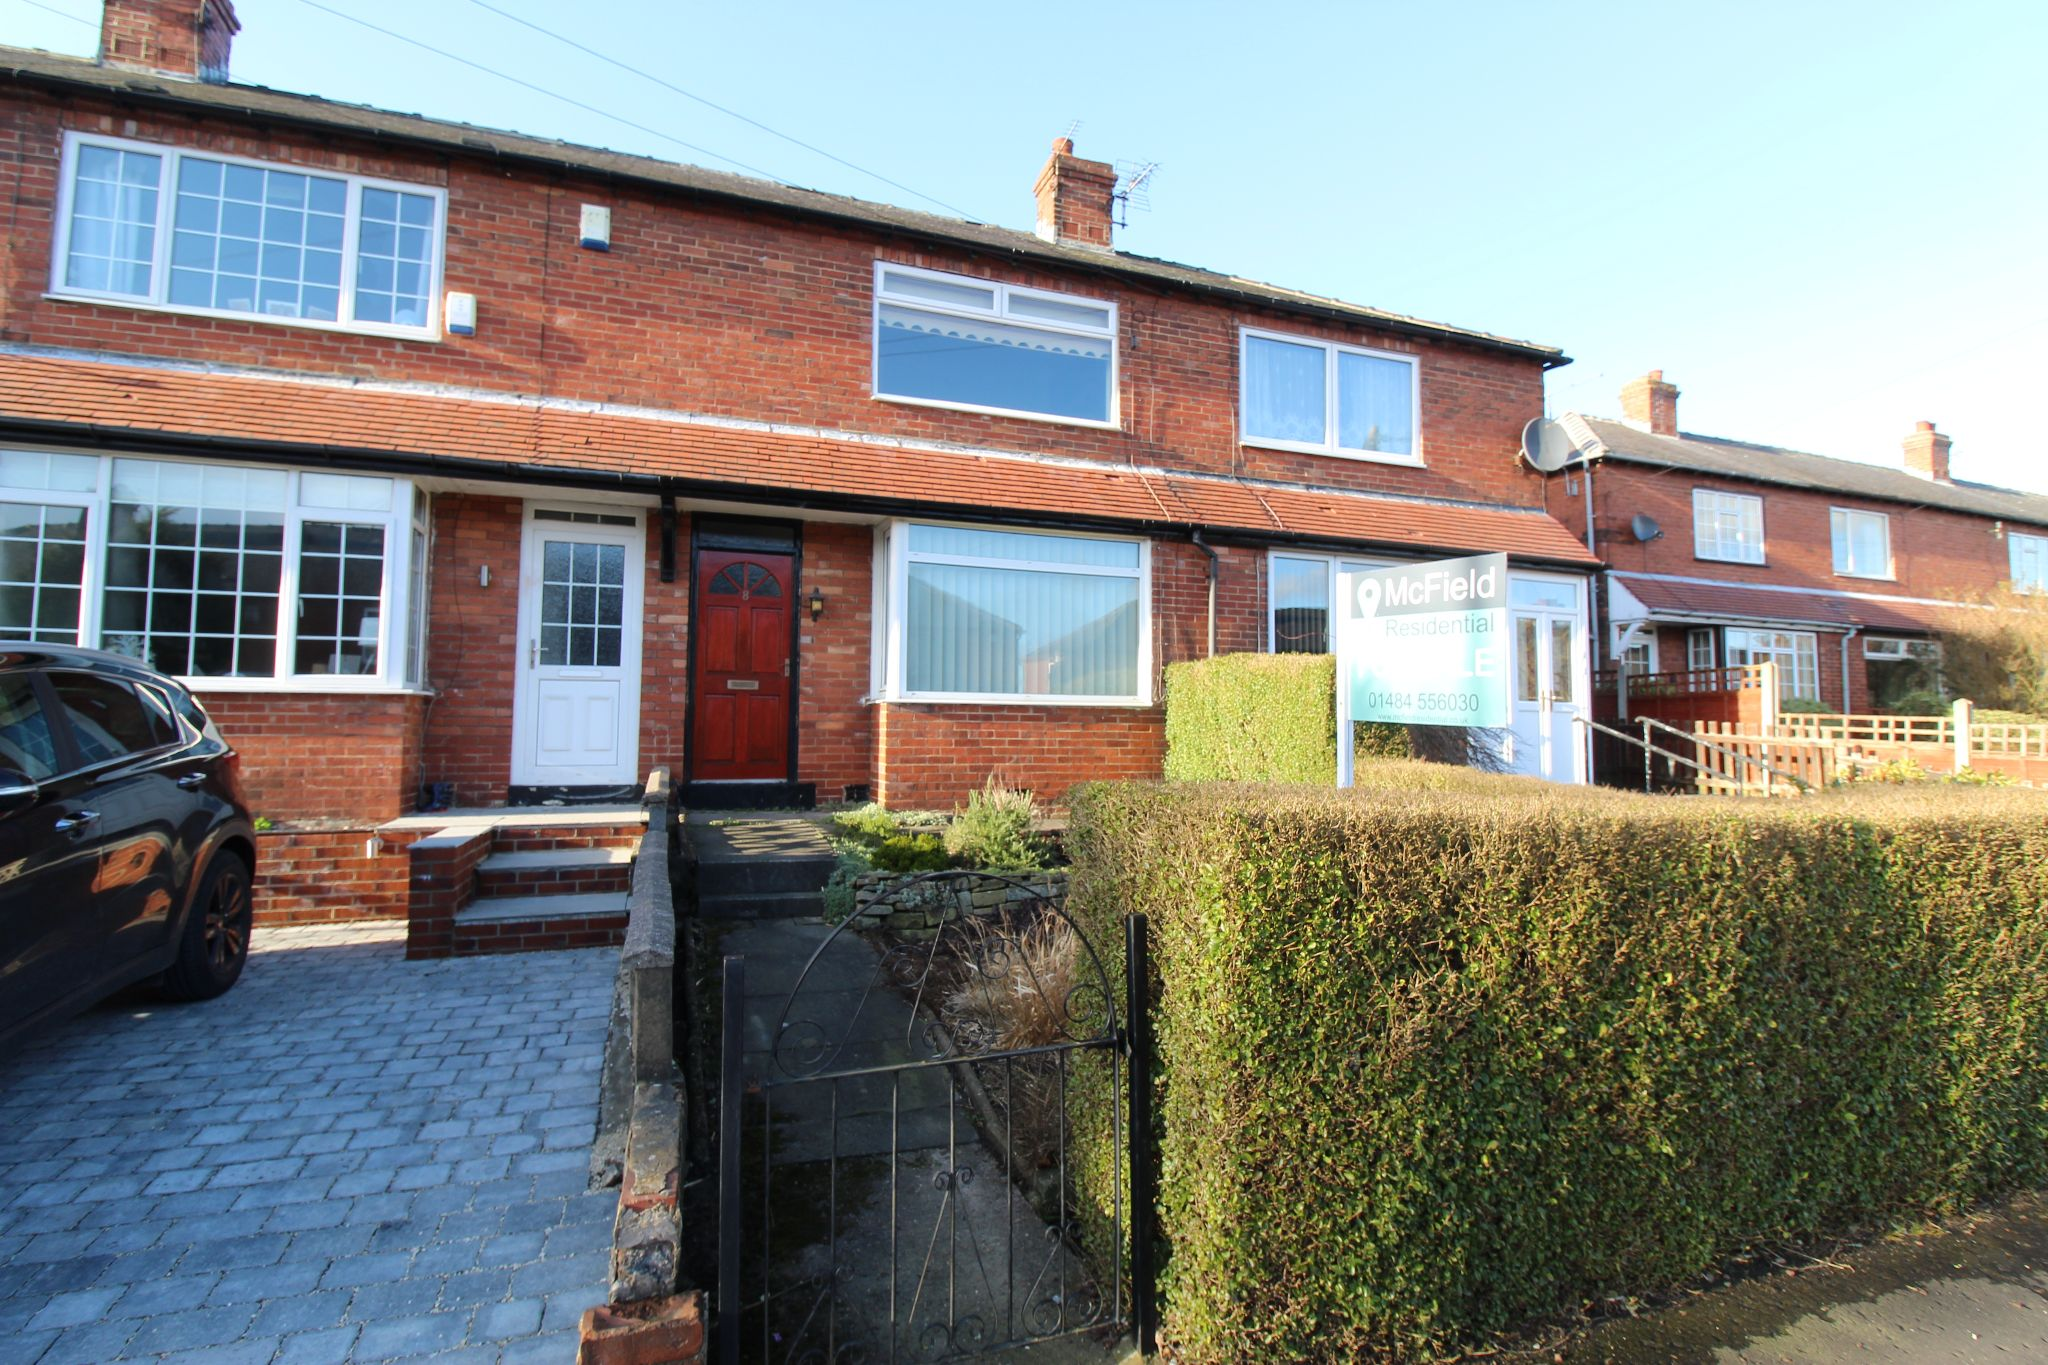 2 bedroom mid terraced house SSTC in Halifax - Photograph 1